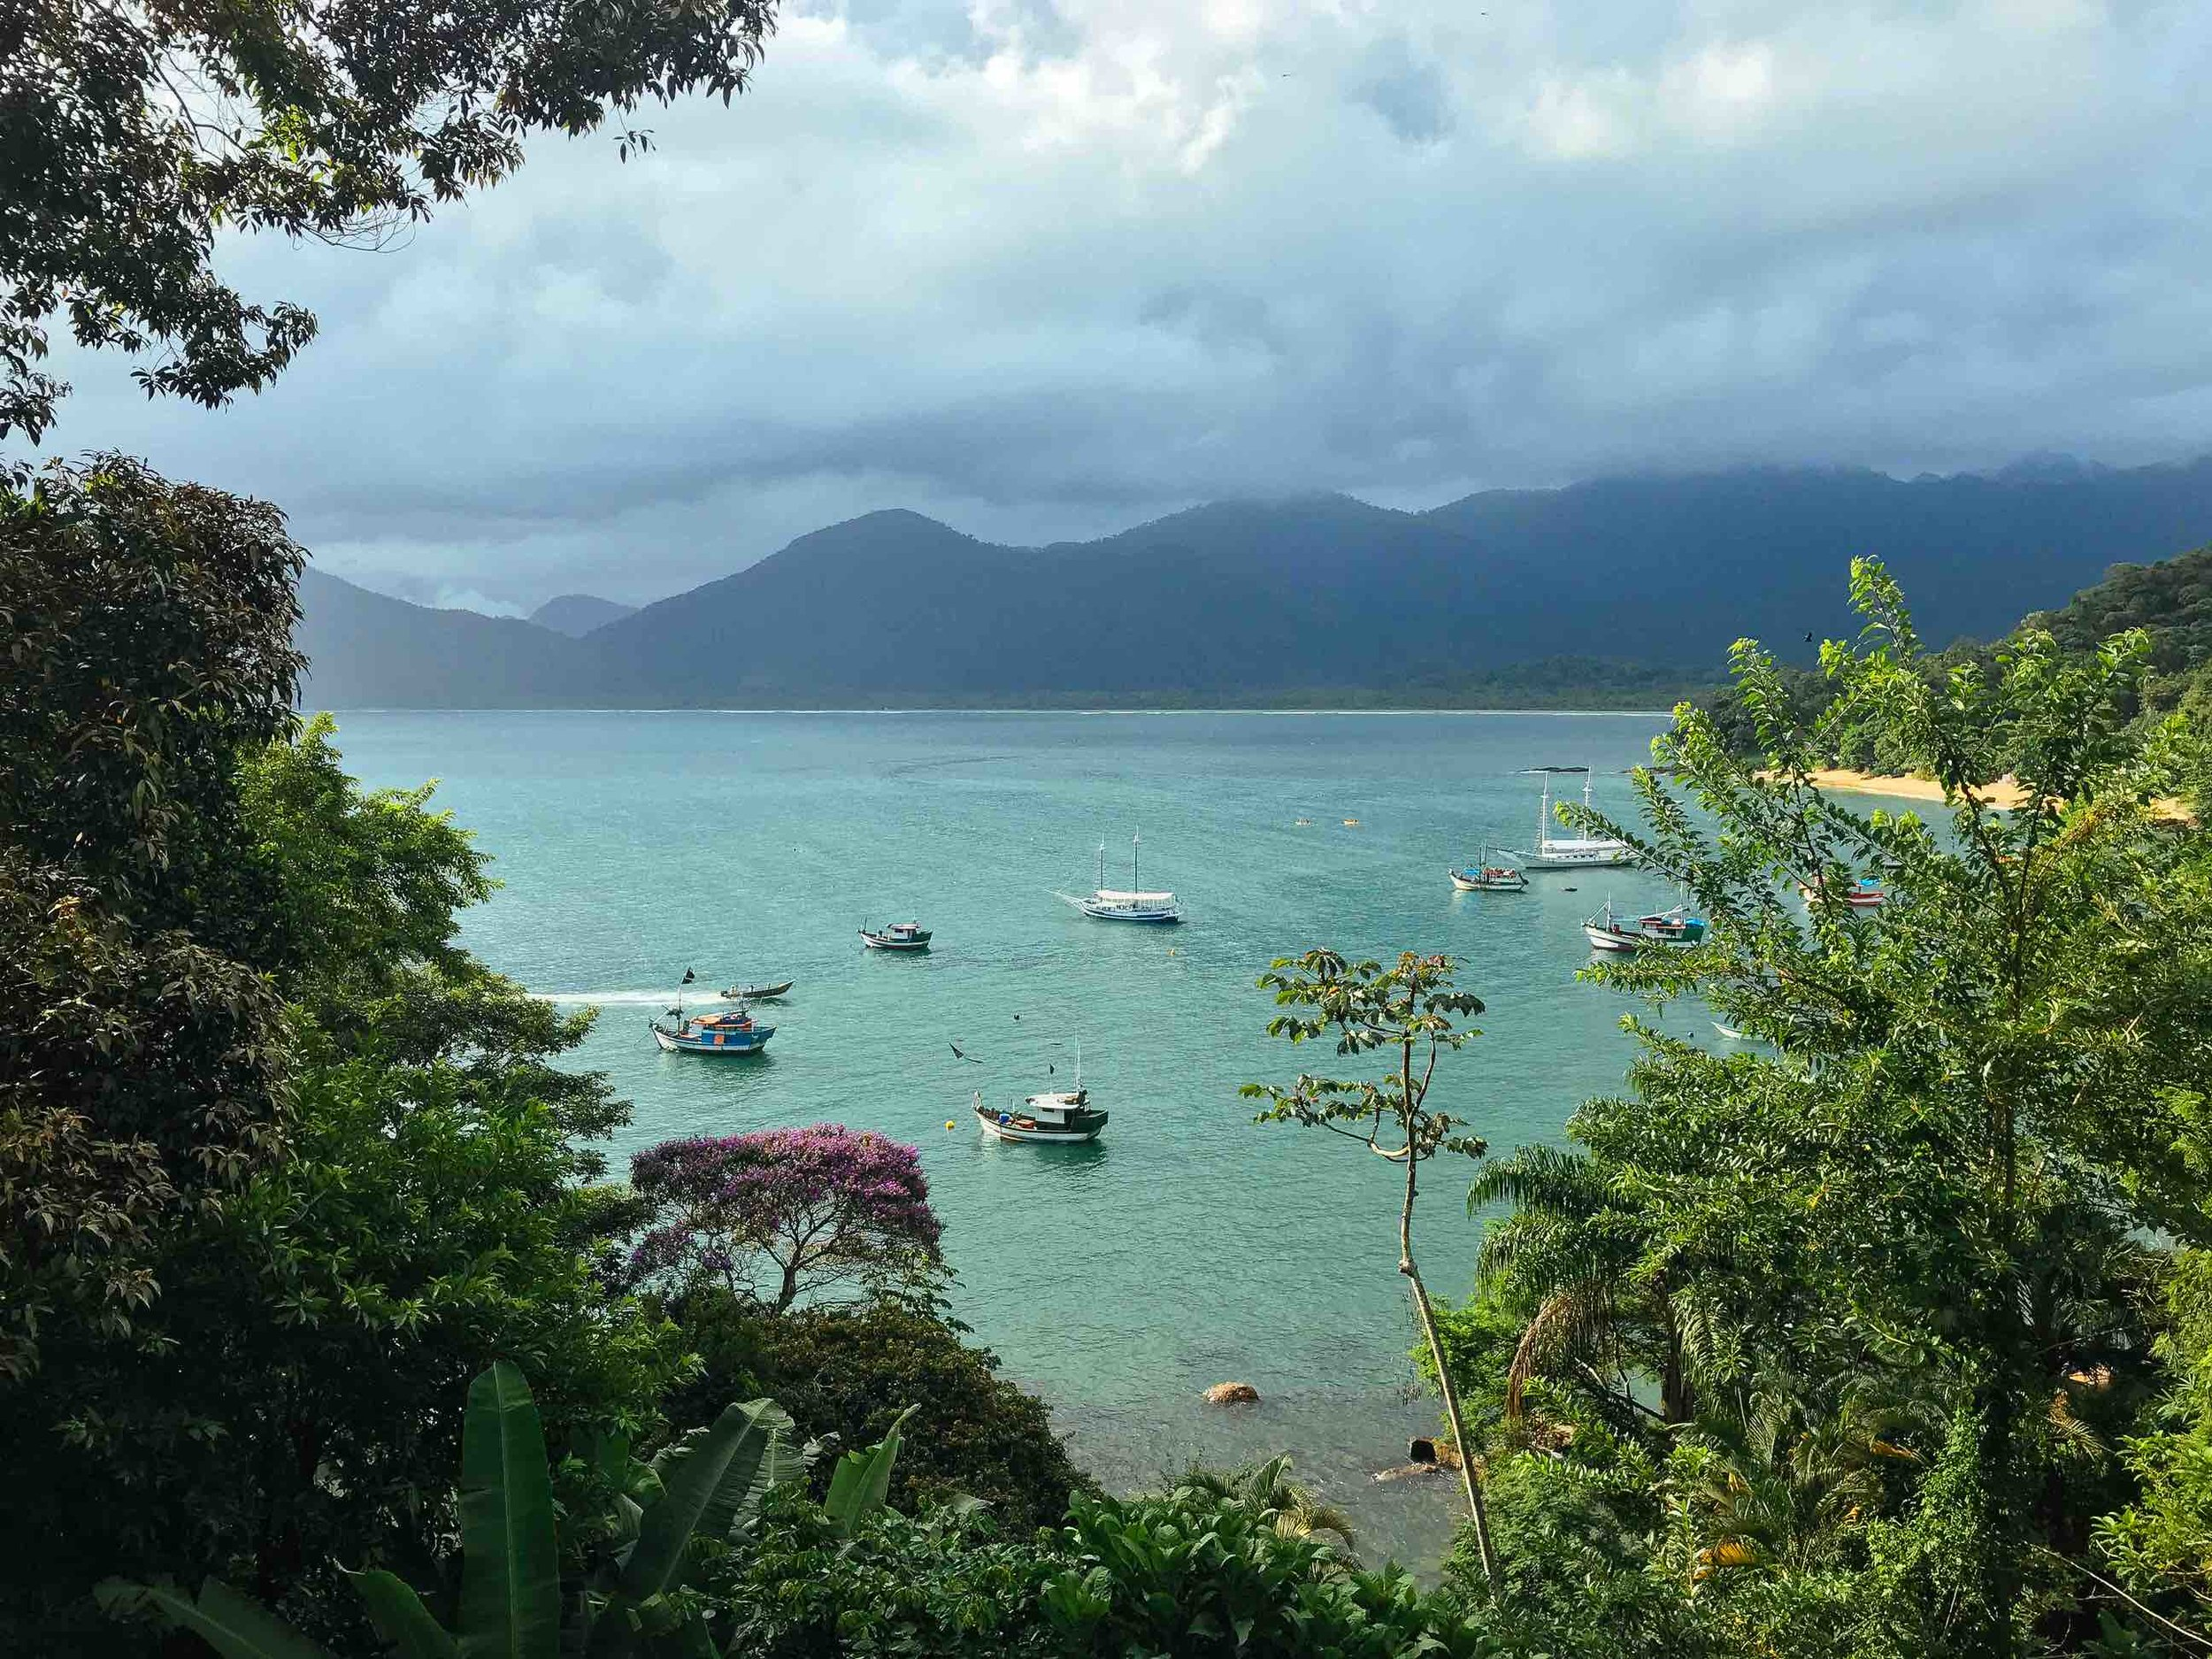 The stunning view from Pousada Picinguaba's patio